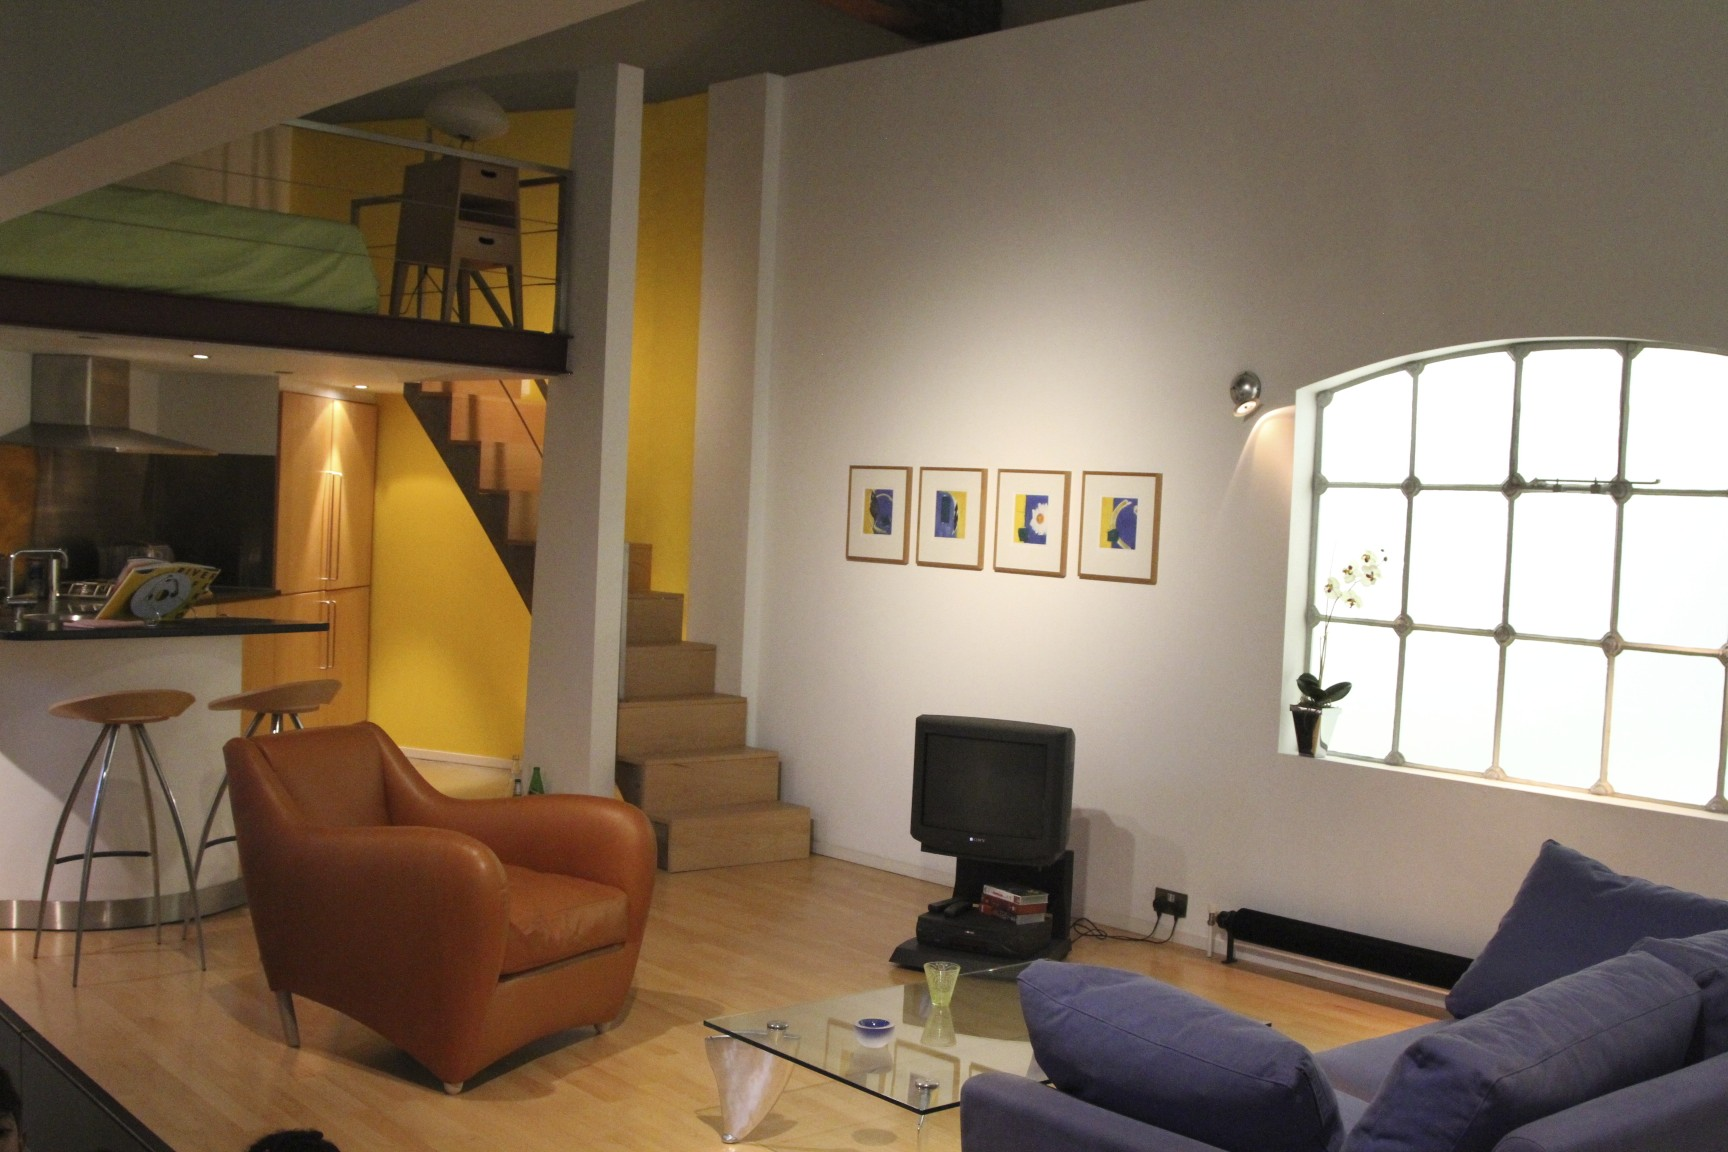 1990s loft apartment geffrye museum london england